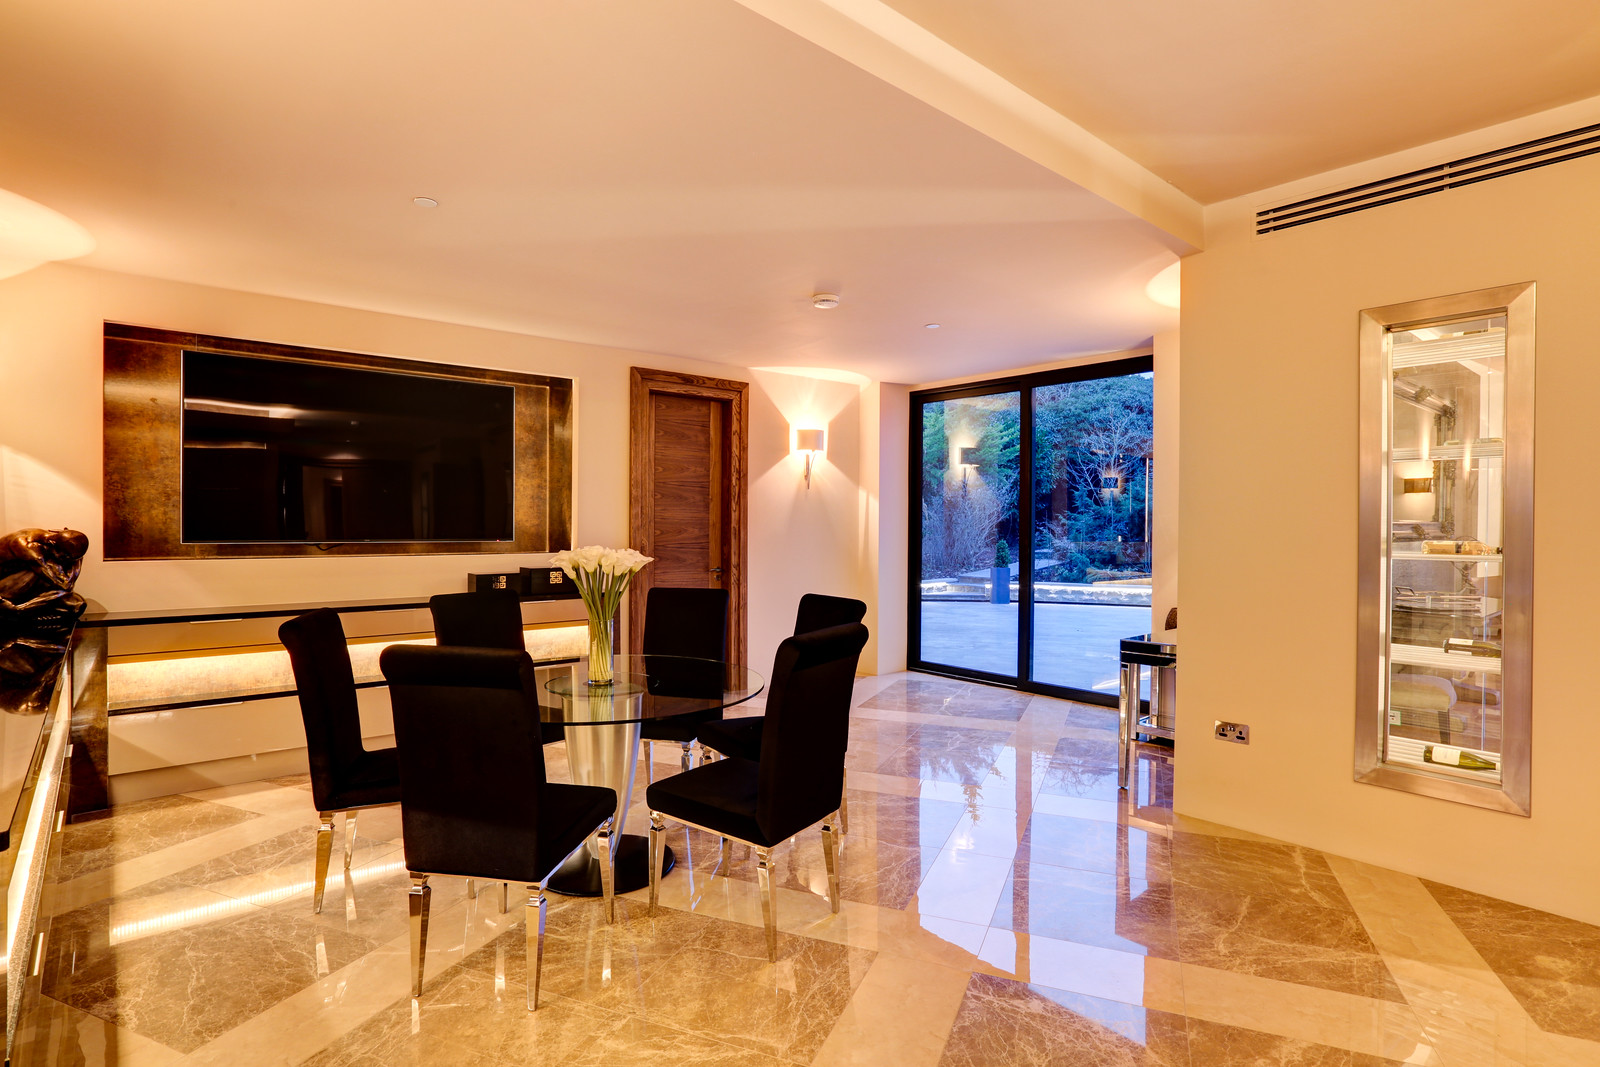 Dining space in Luxury home Tanglewood, Colston Bassett,